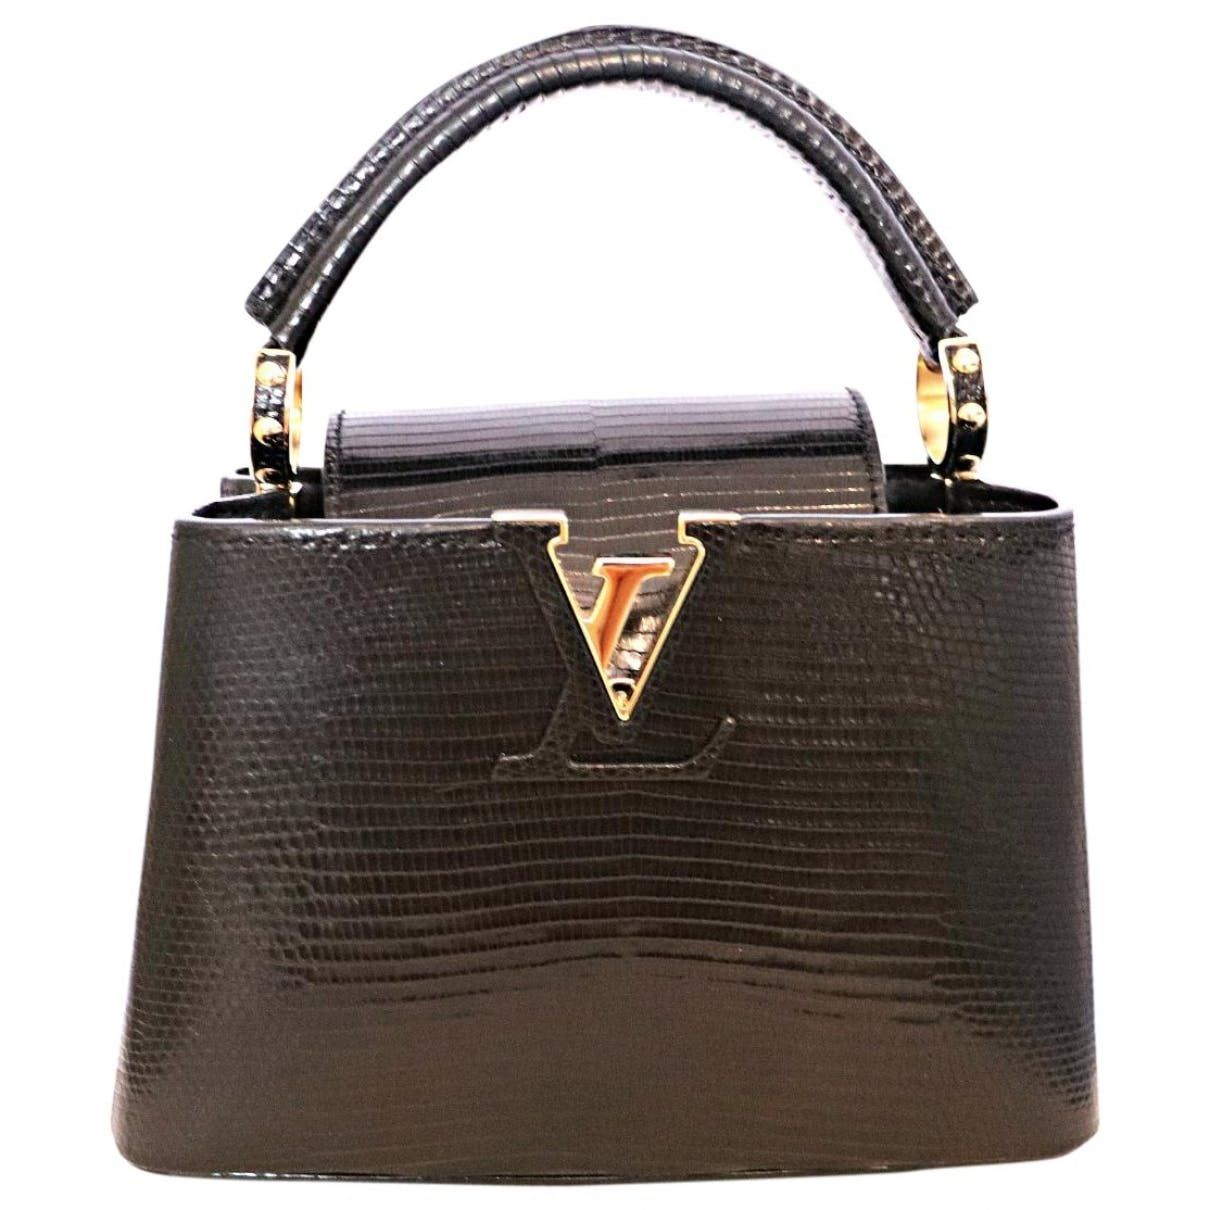 59c14ea1462e Capucines lizard crossbody bag Louis Vuitton Black in Lizard - 6911804